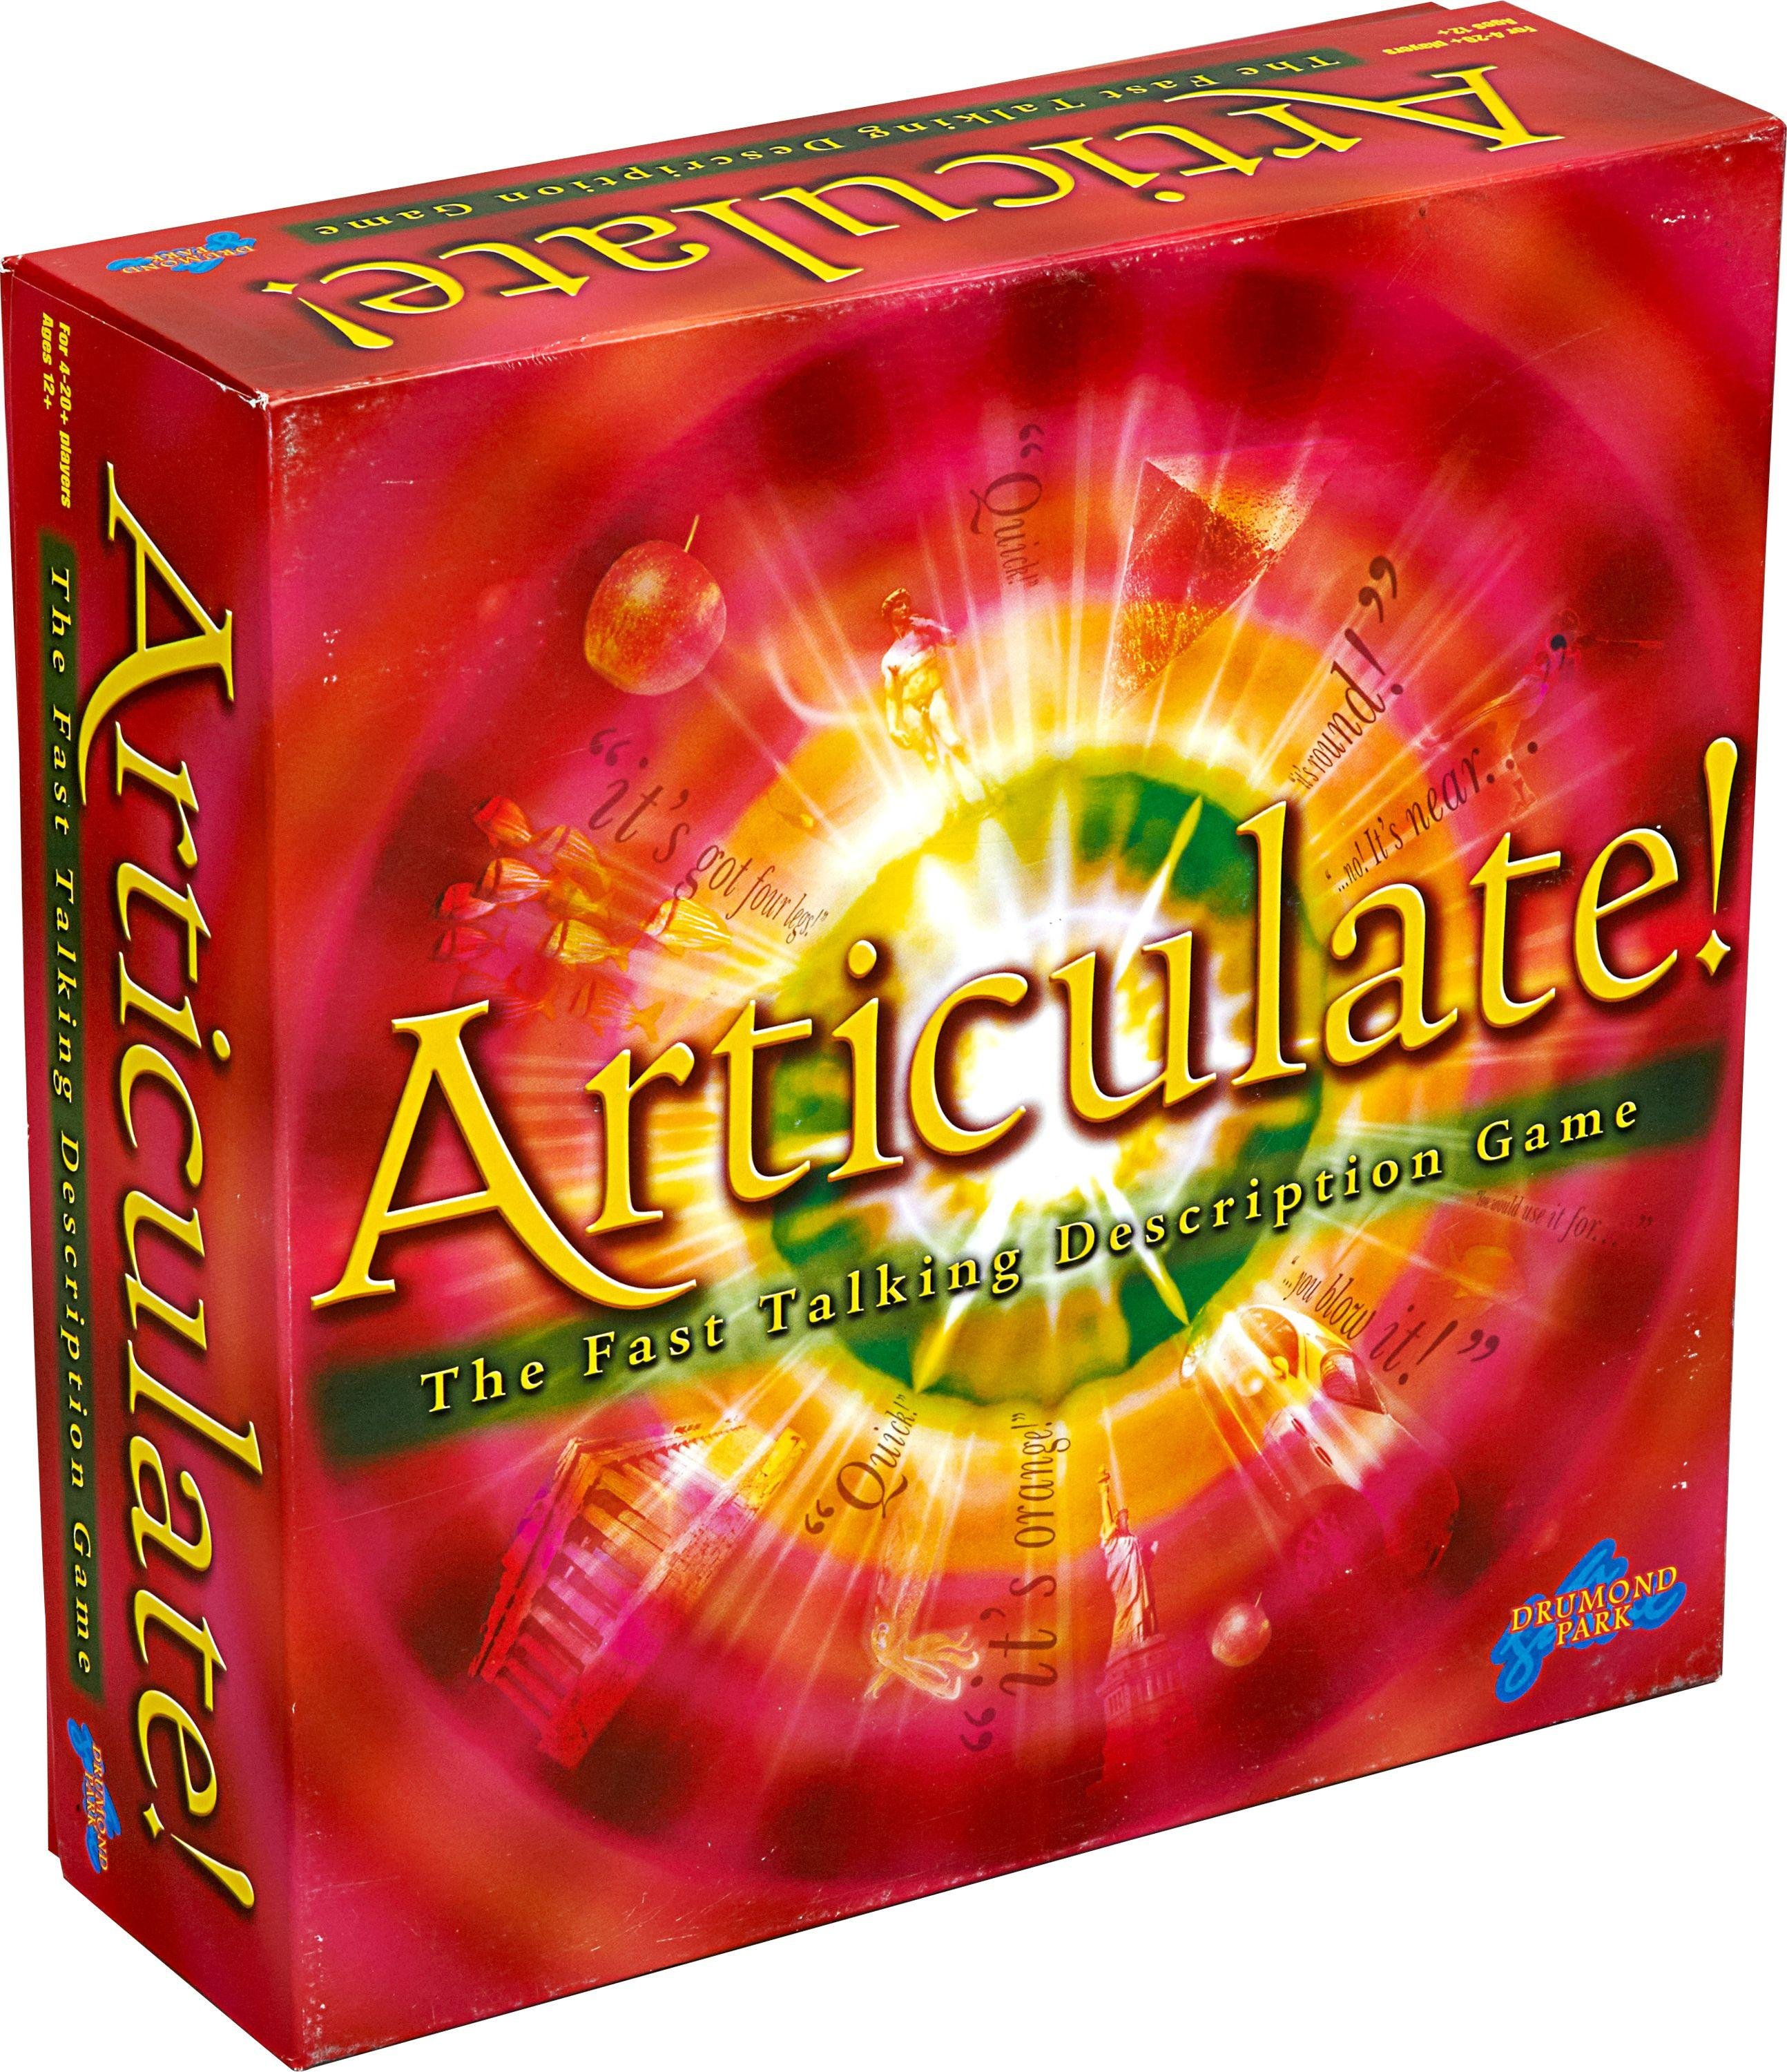 Image of Articulate! - Board Game.